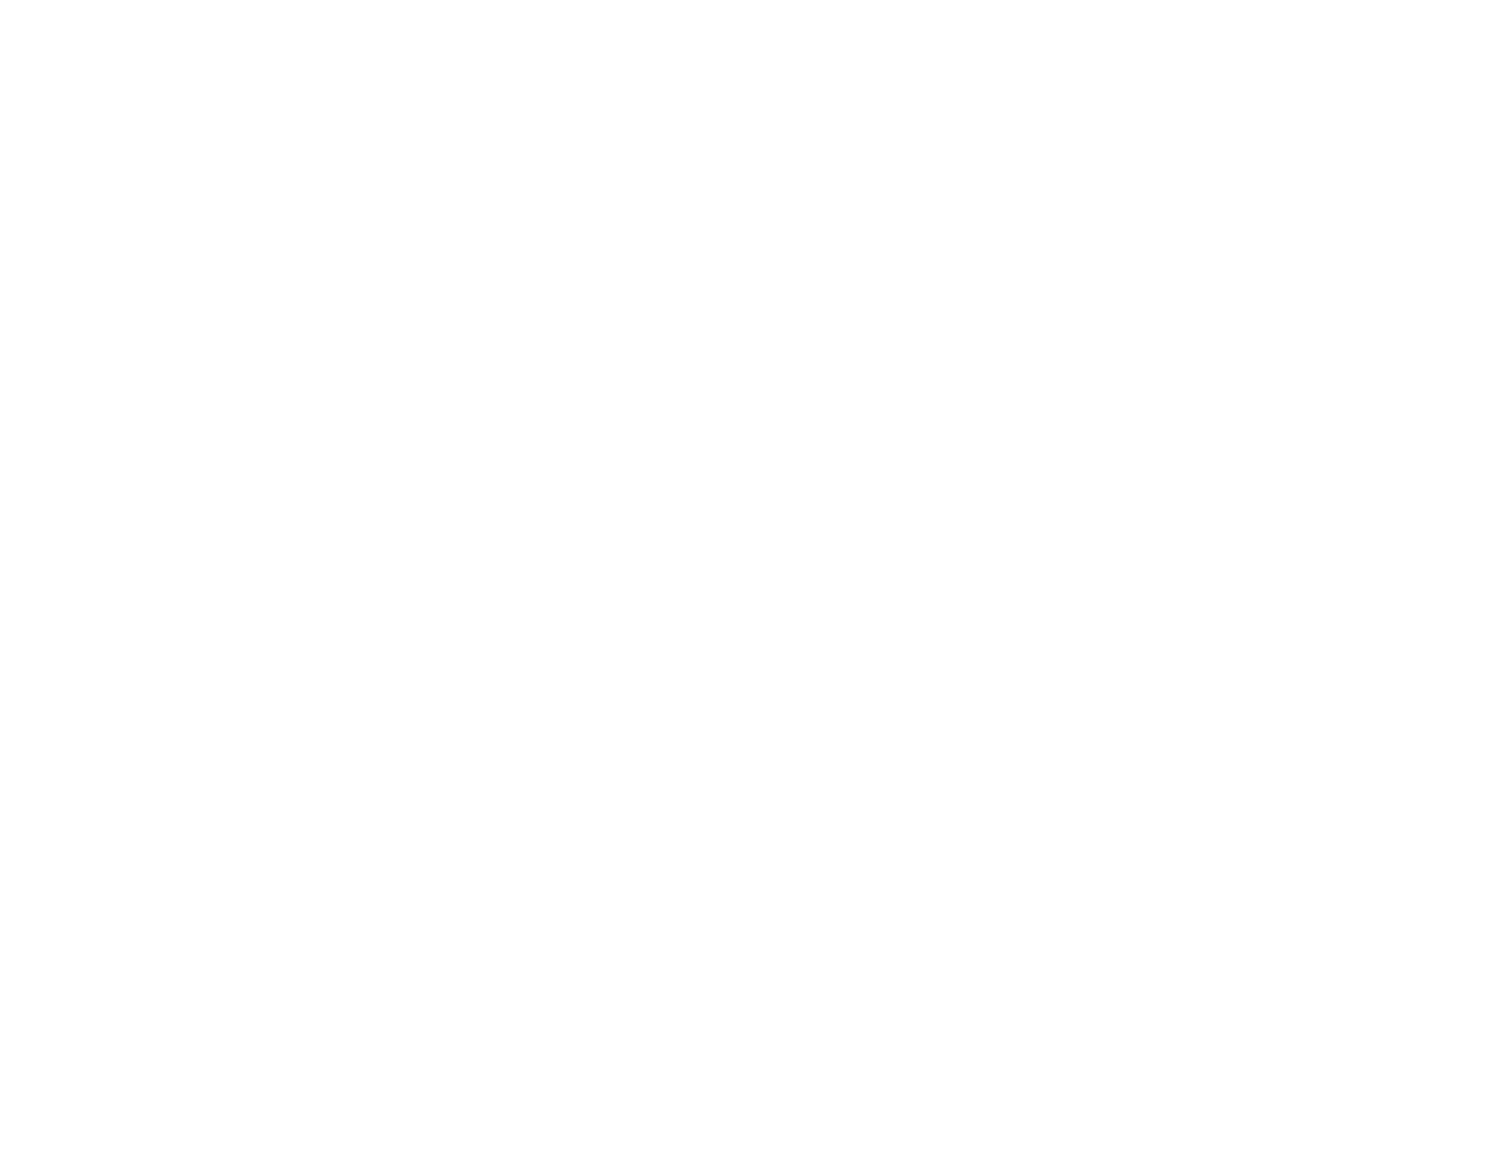 Portland Whiskey Society